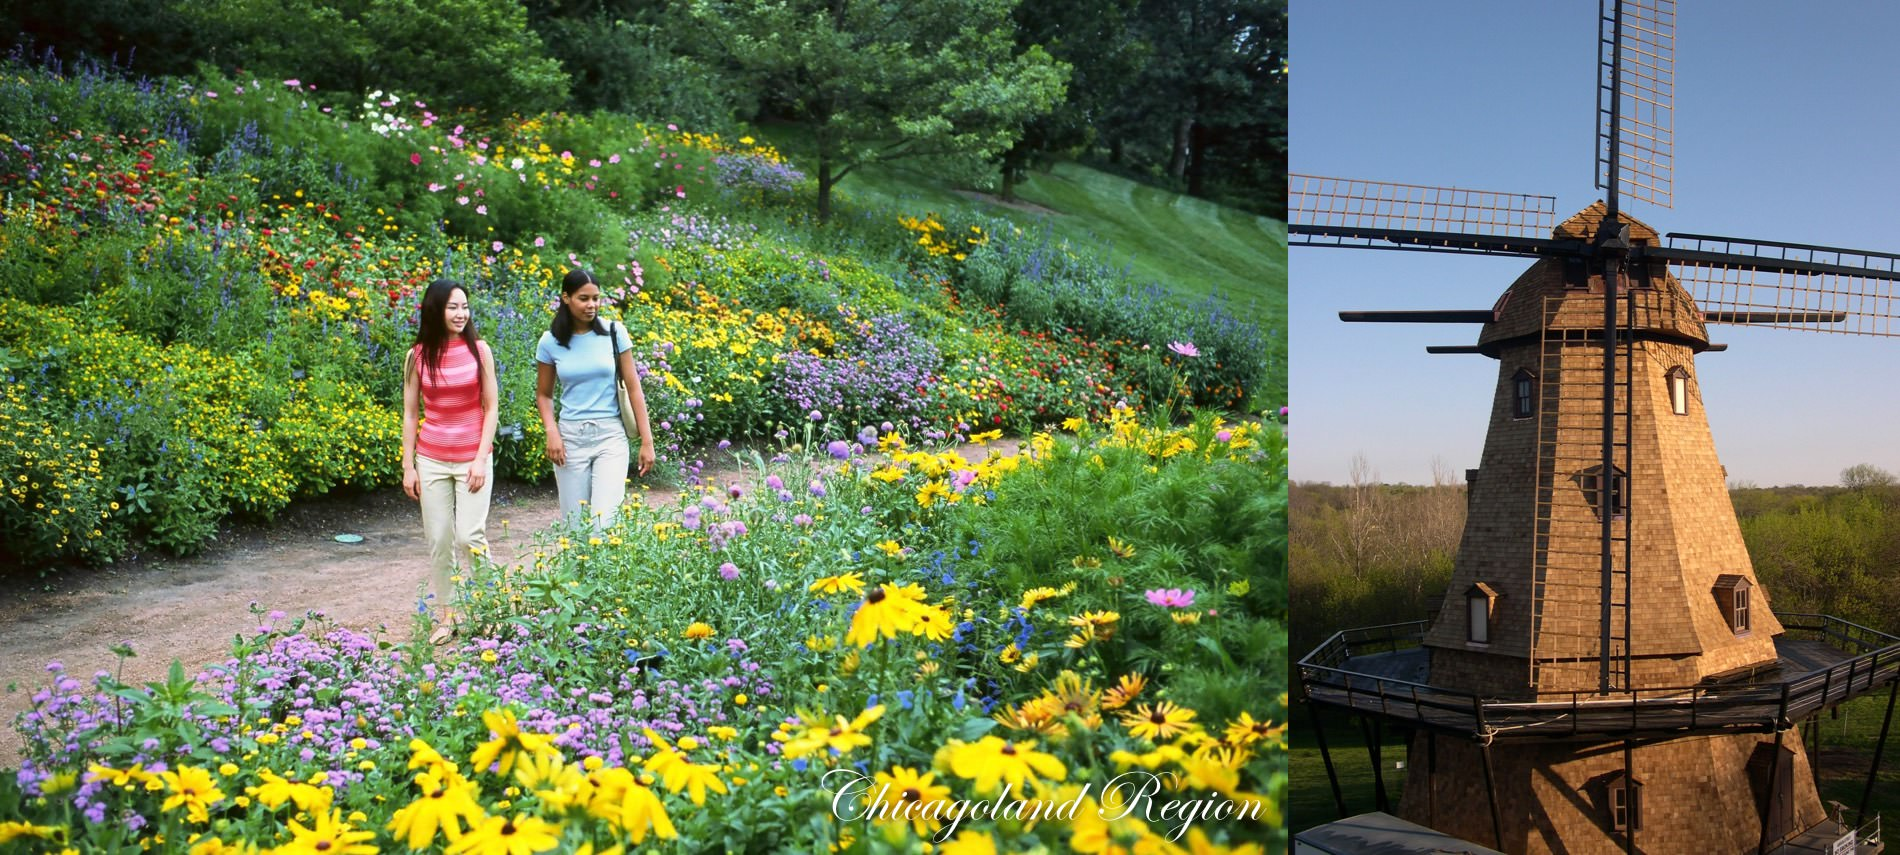 Girls with white jeans and t-shirts walking on dirt path through flower garden, Concrete Windmill on right.